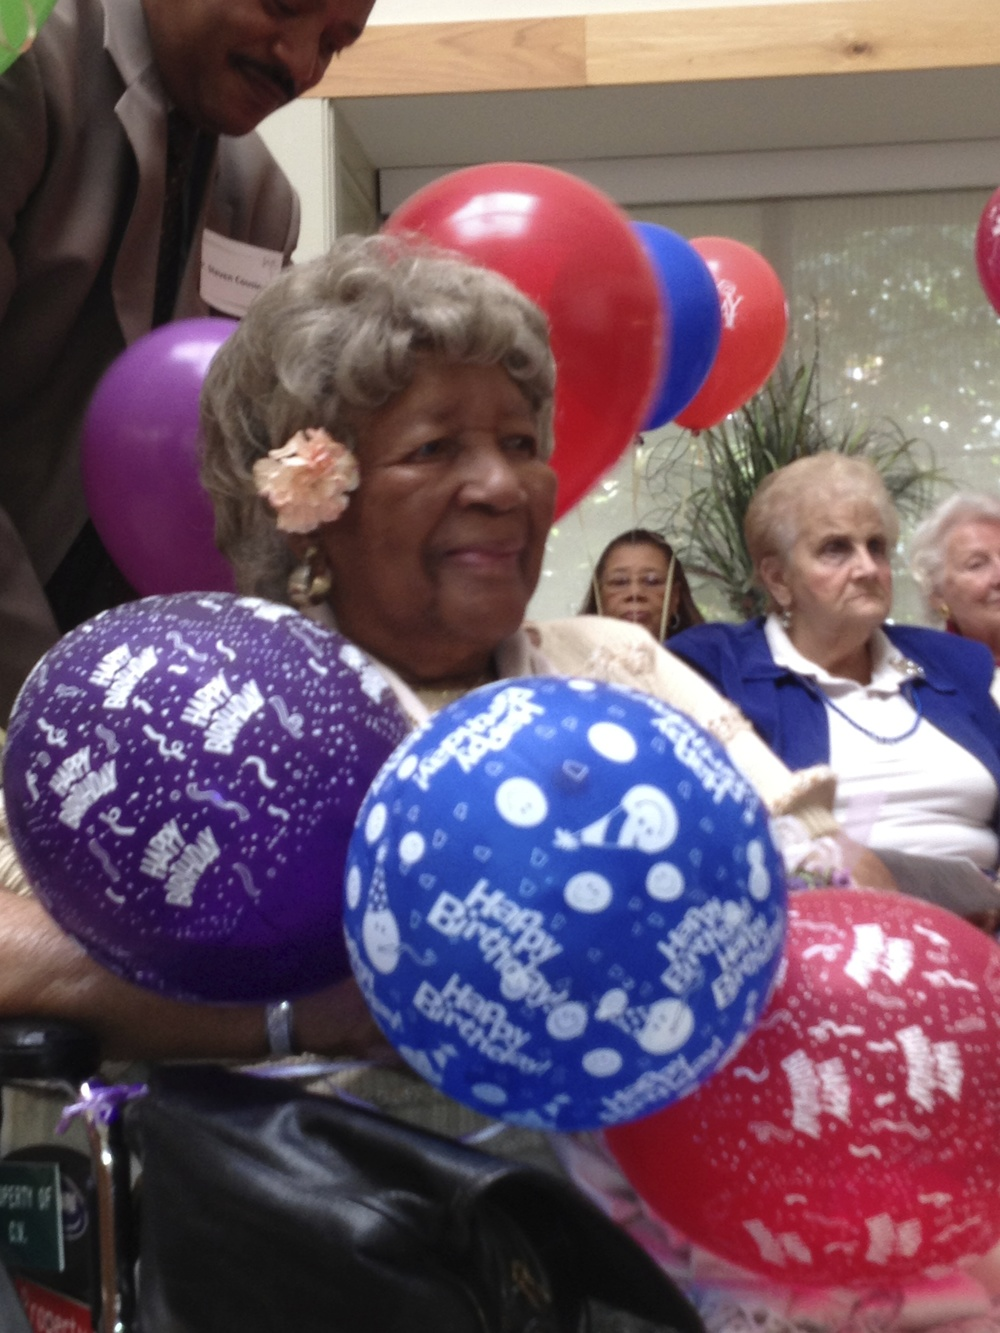 My dear friend Mrs. Eula Cousins at her 109th birthday party. She passed away at age 110.